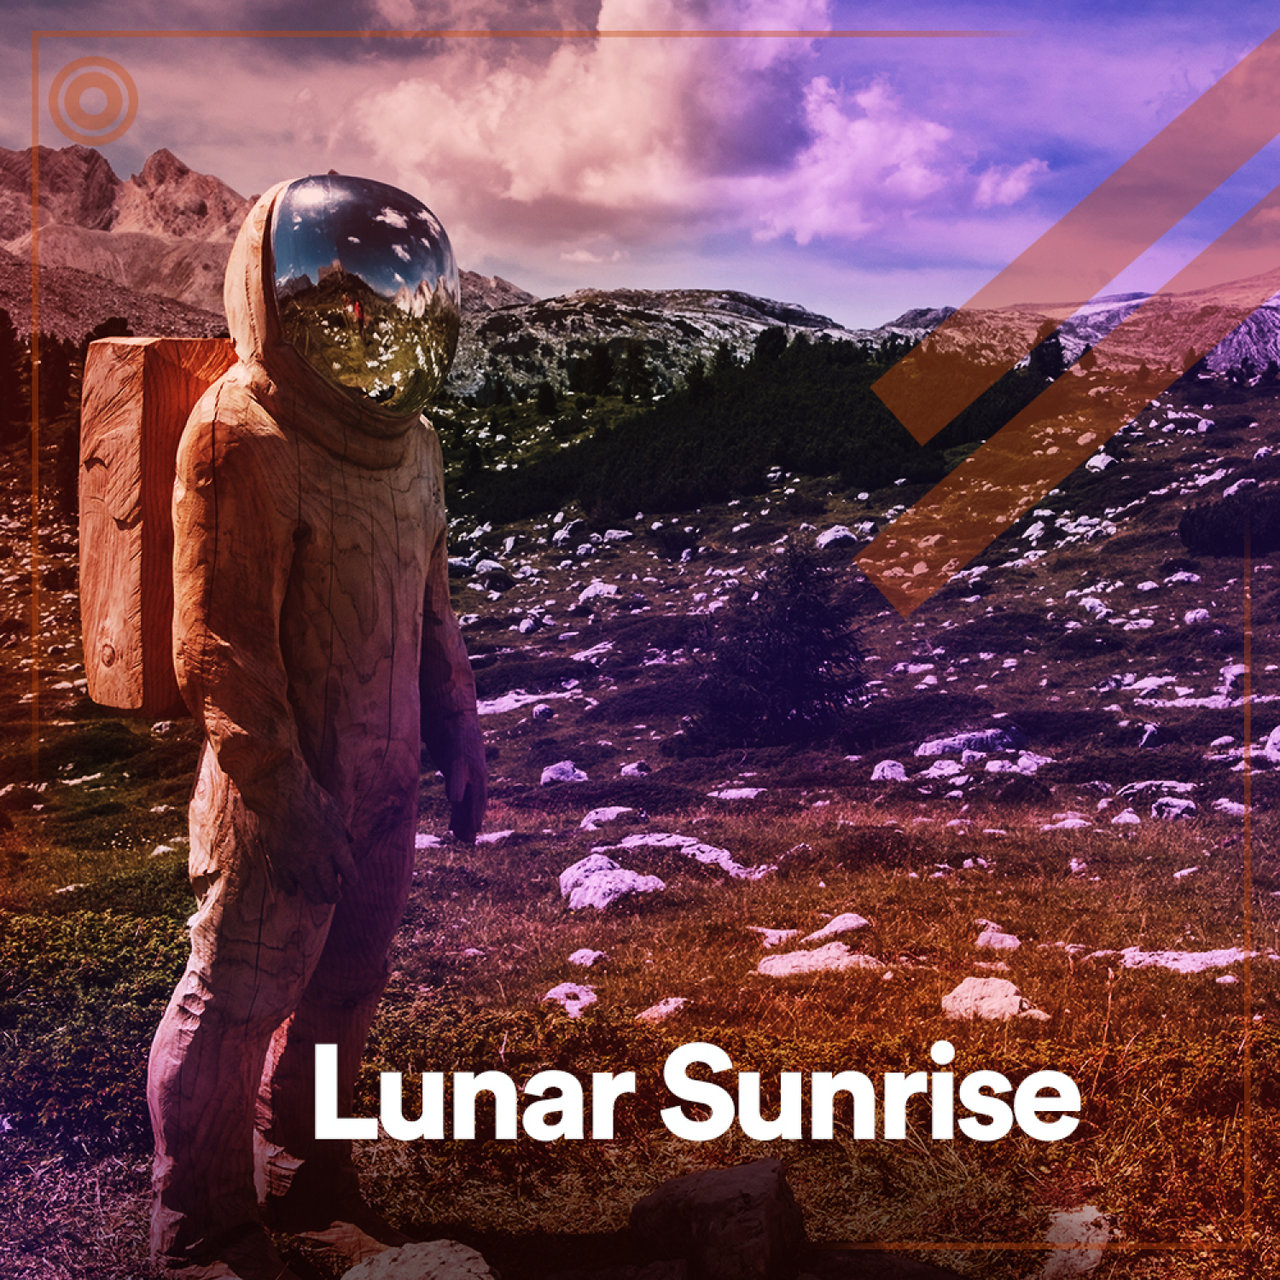 Lunar Sunrise